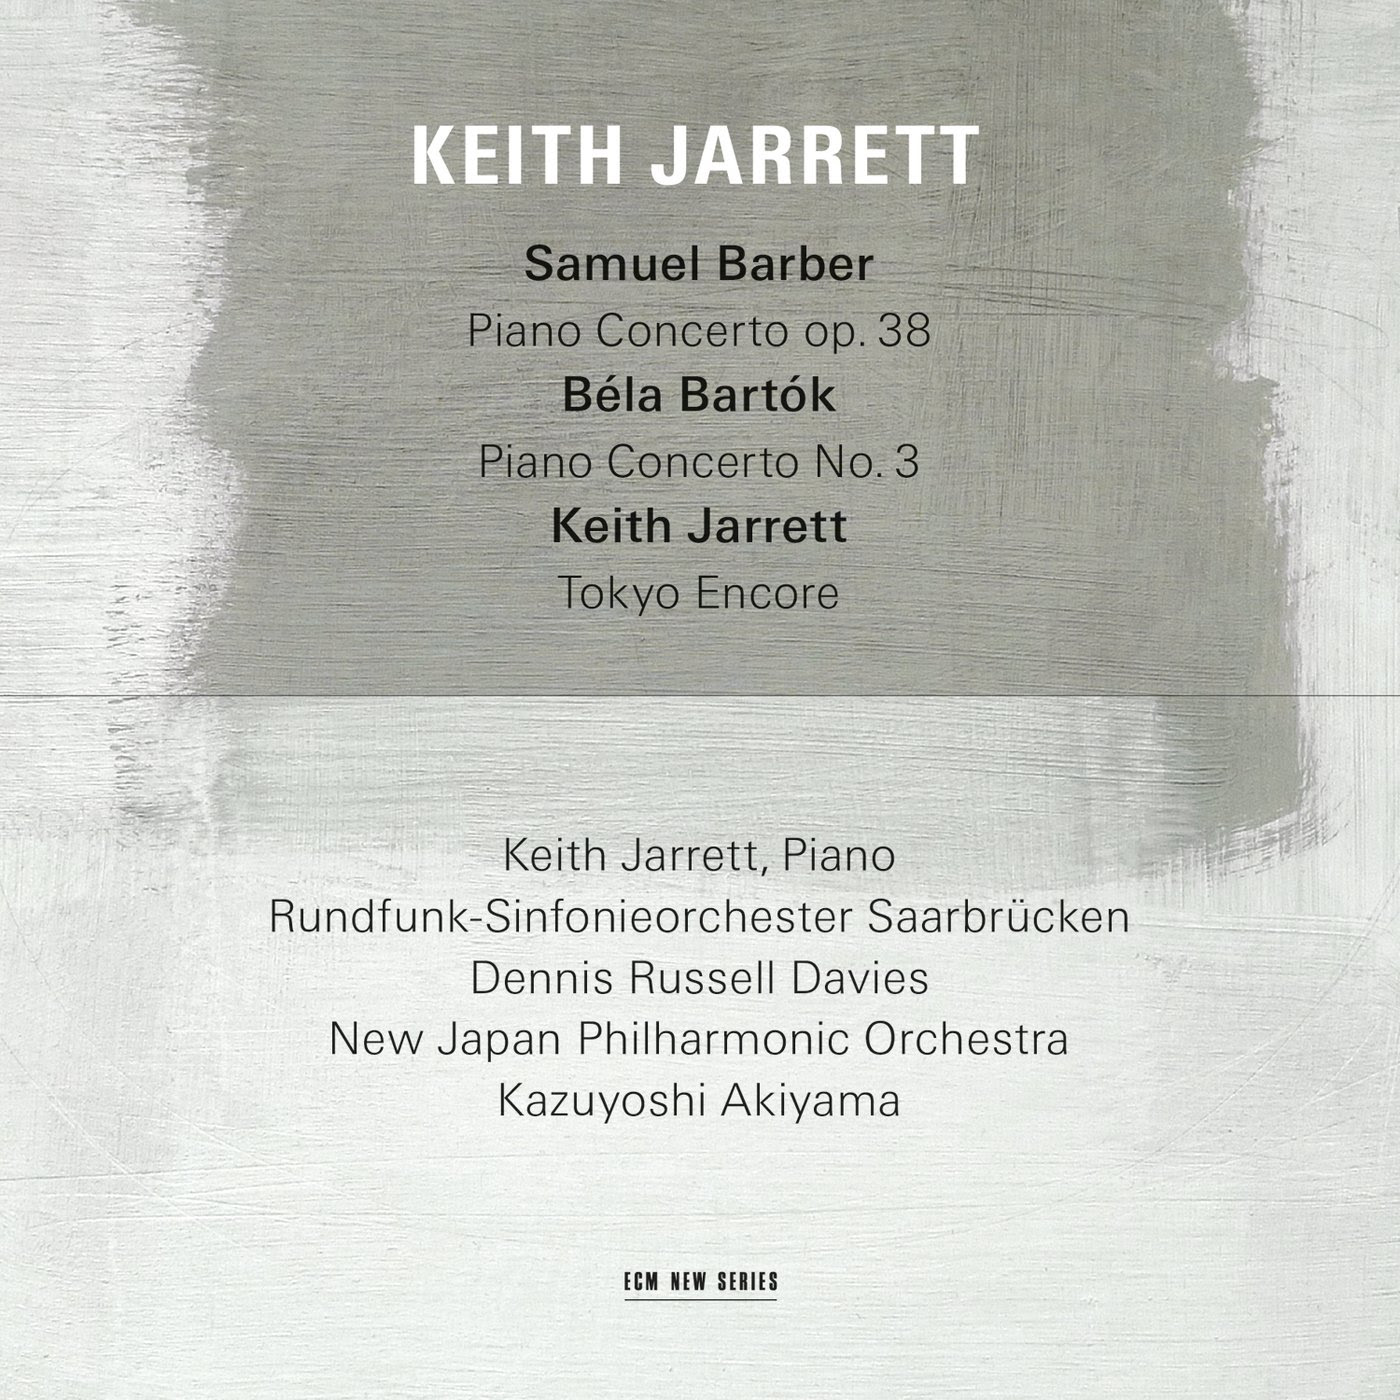 Keith Jarrett - Barber /Bartok cover